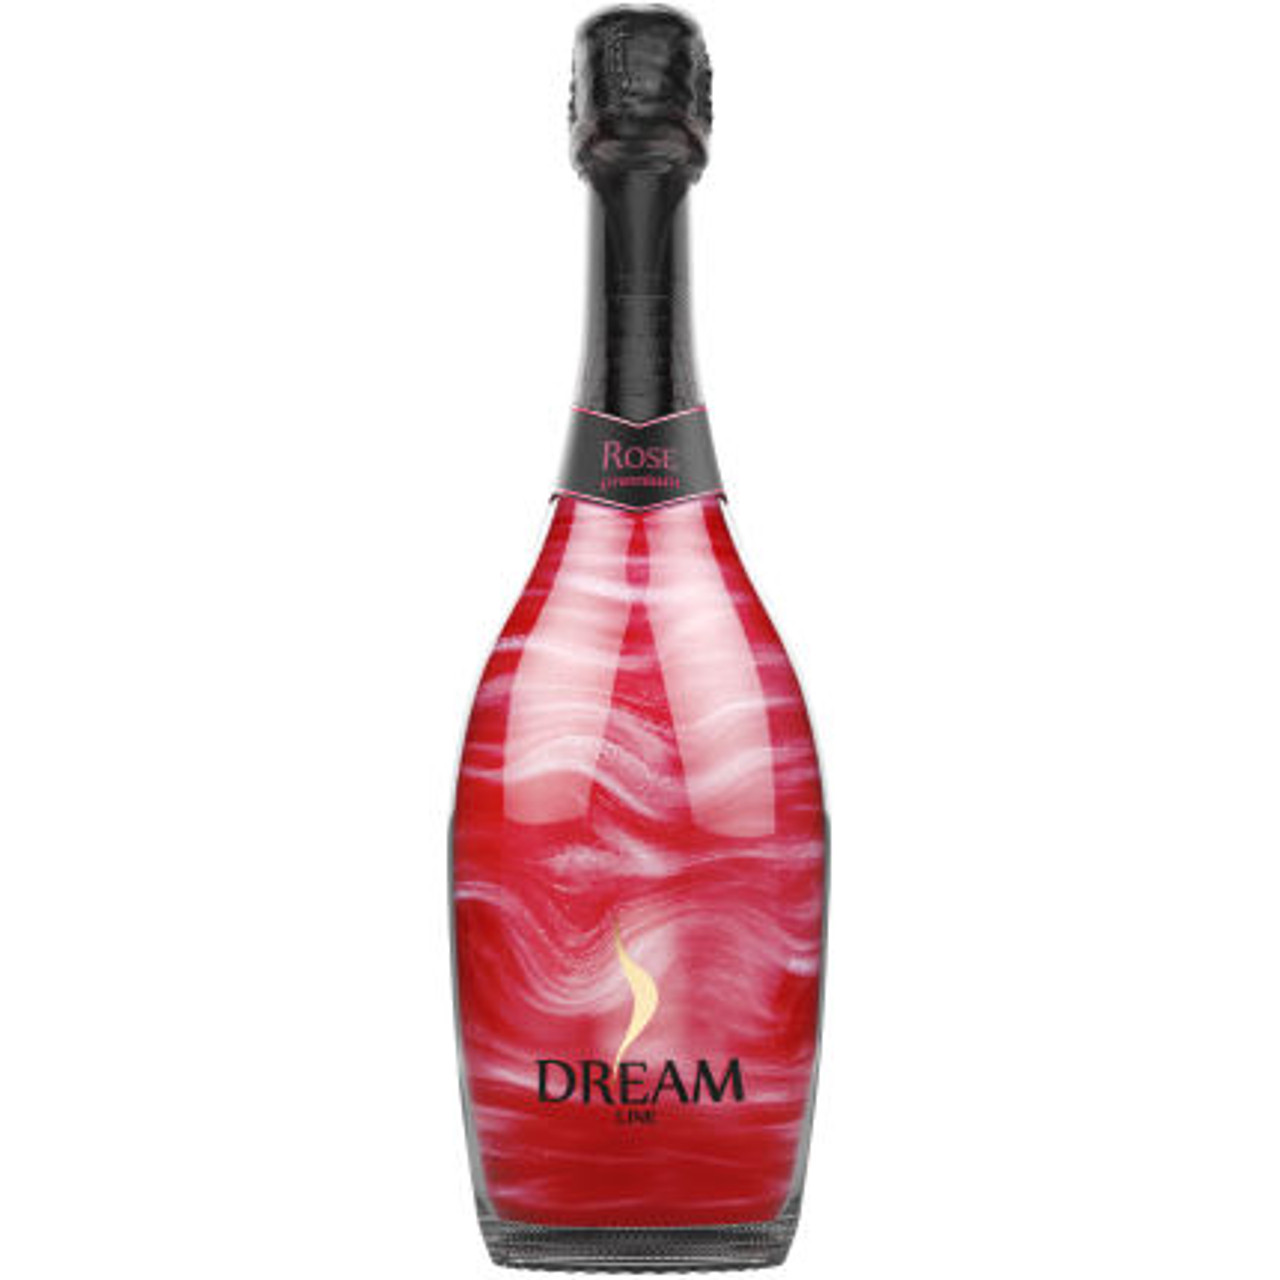 Dream Line Silver Rose Sparkling Wine NV